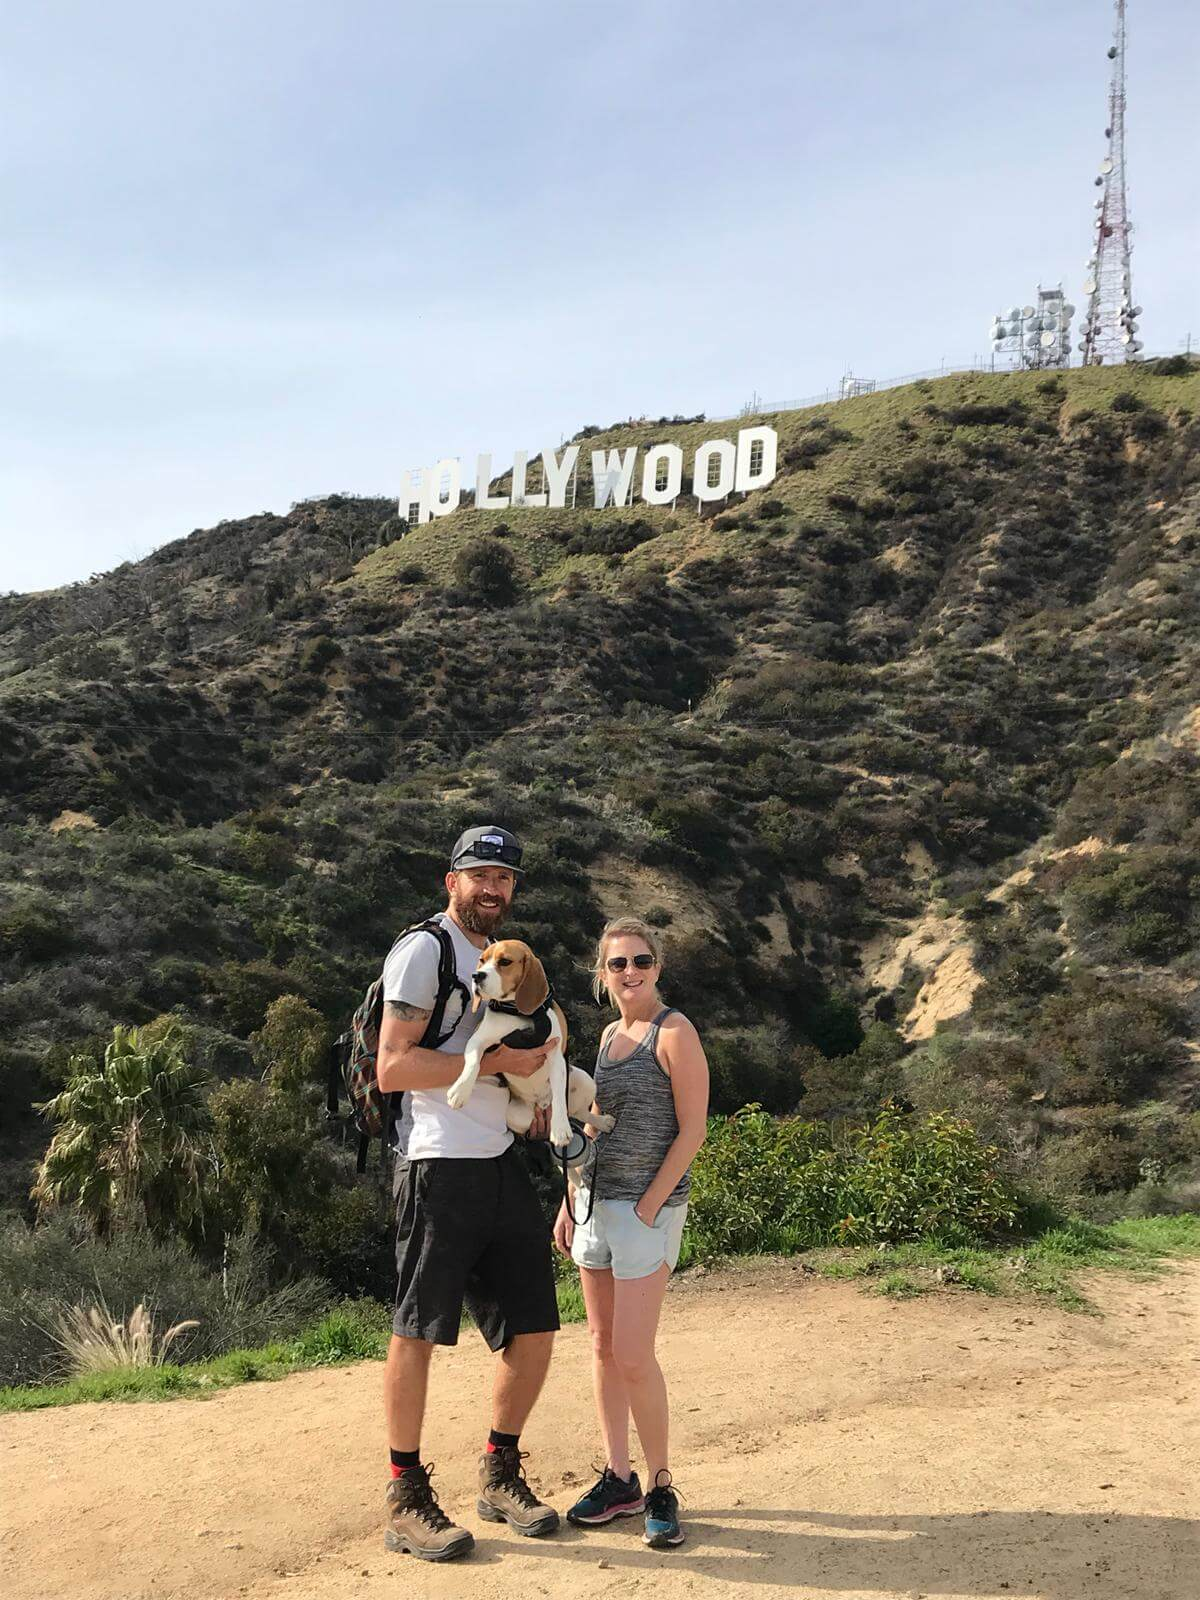 Lauren, Mike and their dog Stevie Beagle hiking near the Hollywood sign